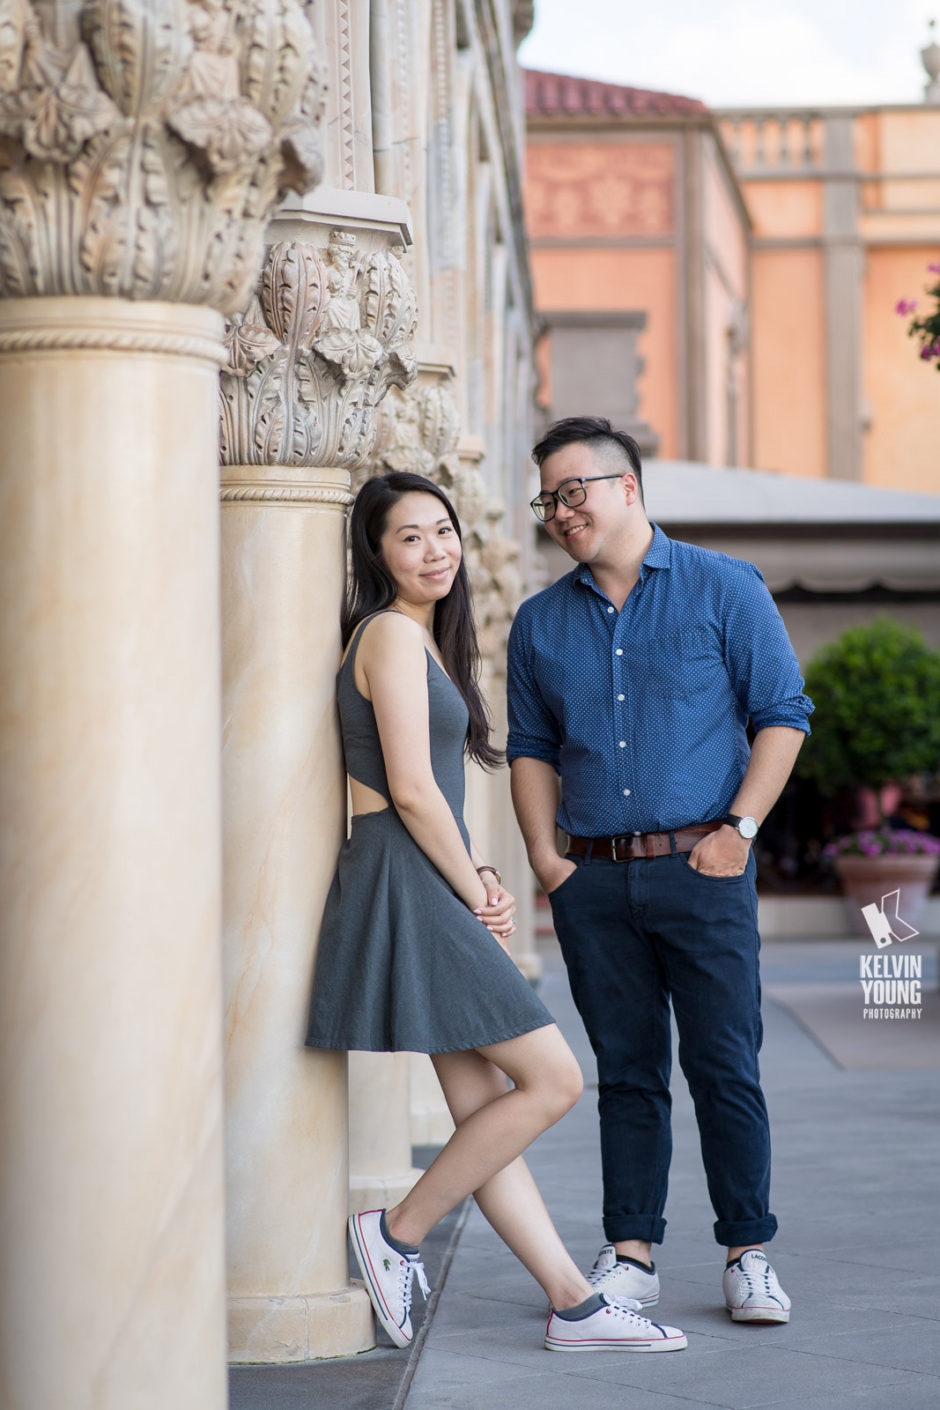 KYP16-Coco-Tony-Disney-World-Engagement-Photo-Session_006